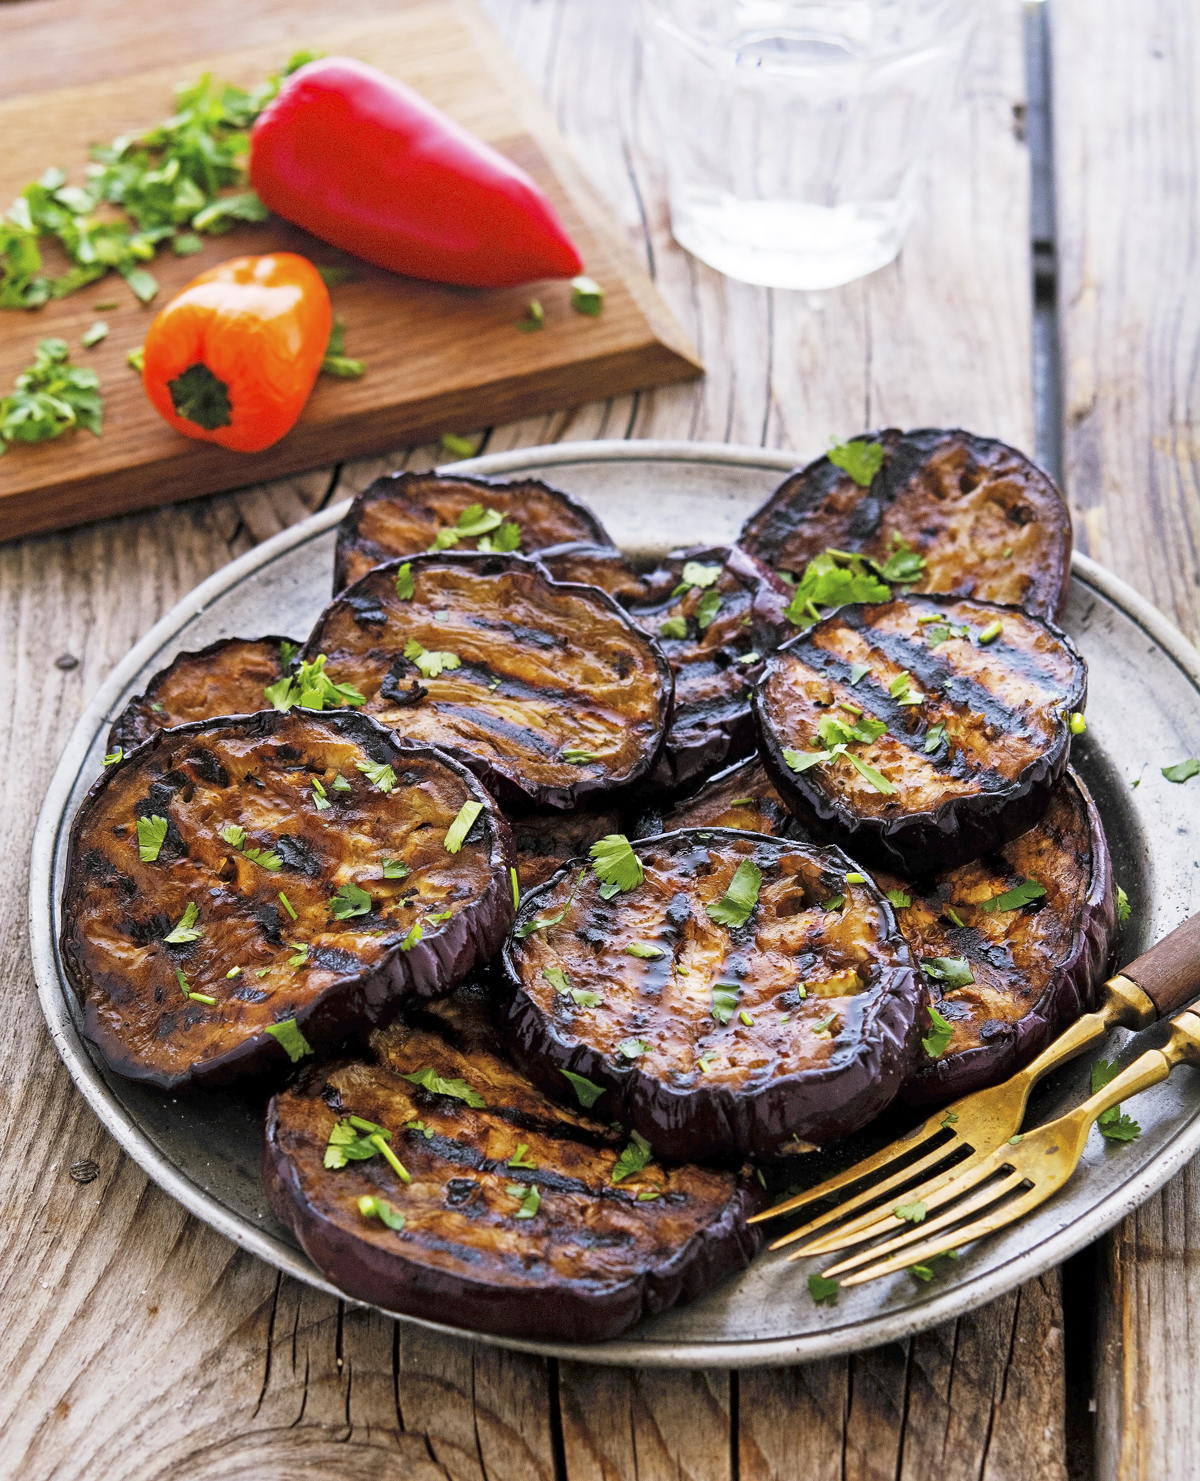 Vegetarian BBQ Recipes - Grilled Eggplant - Adelaide Outdoor Kitchens